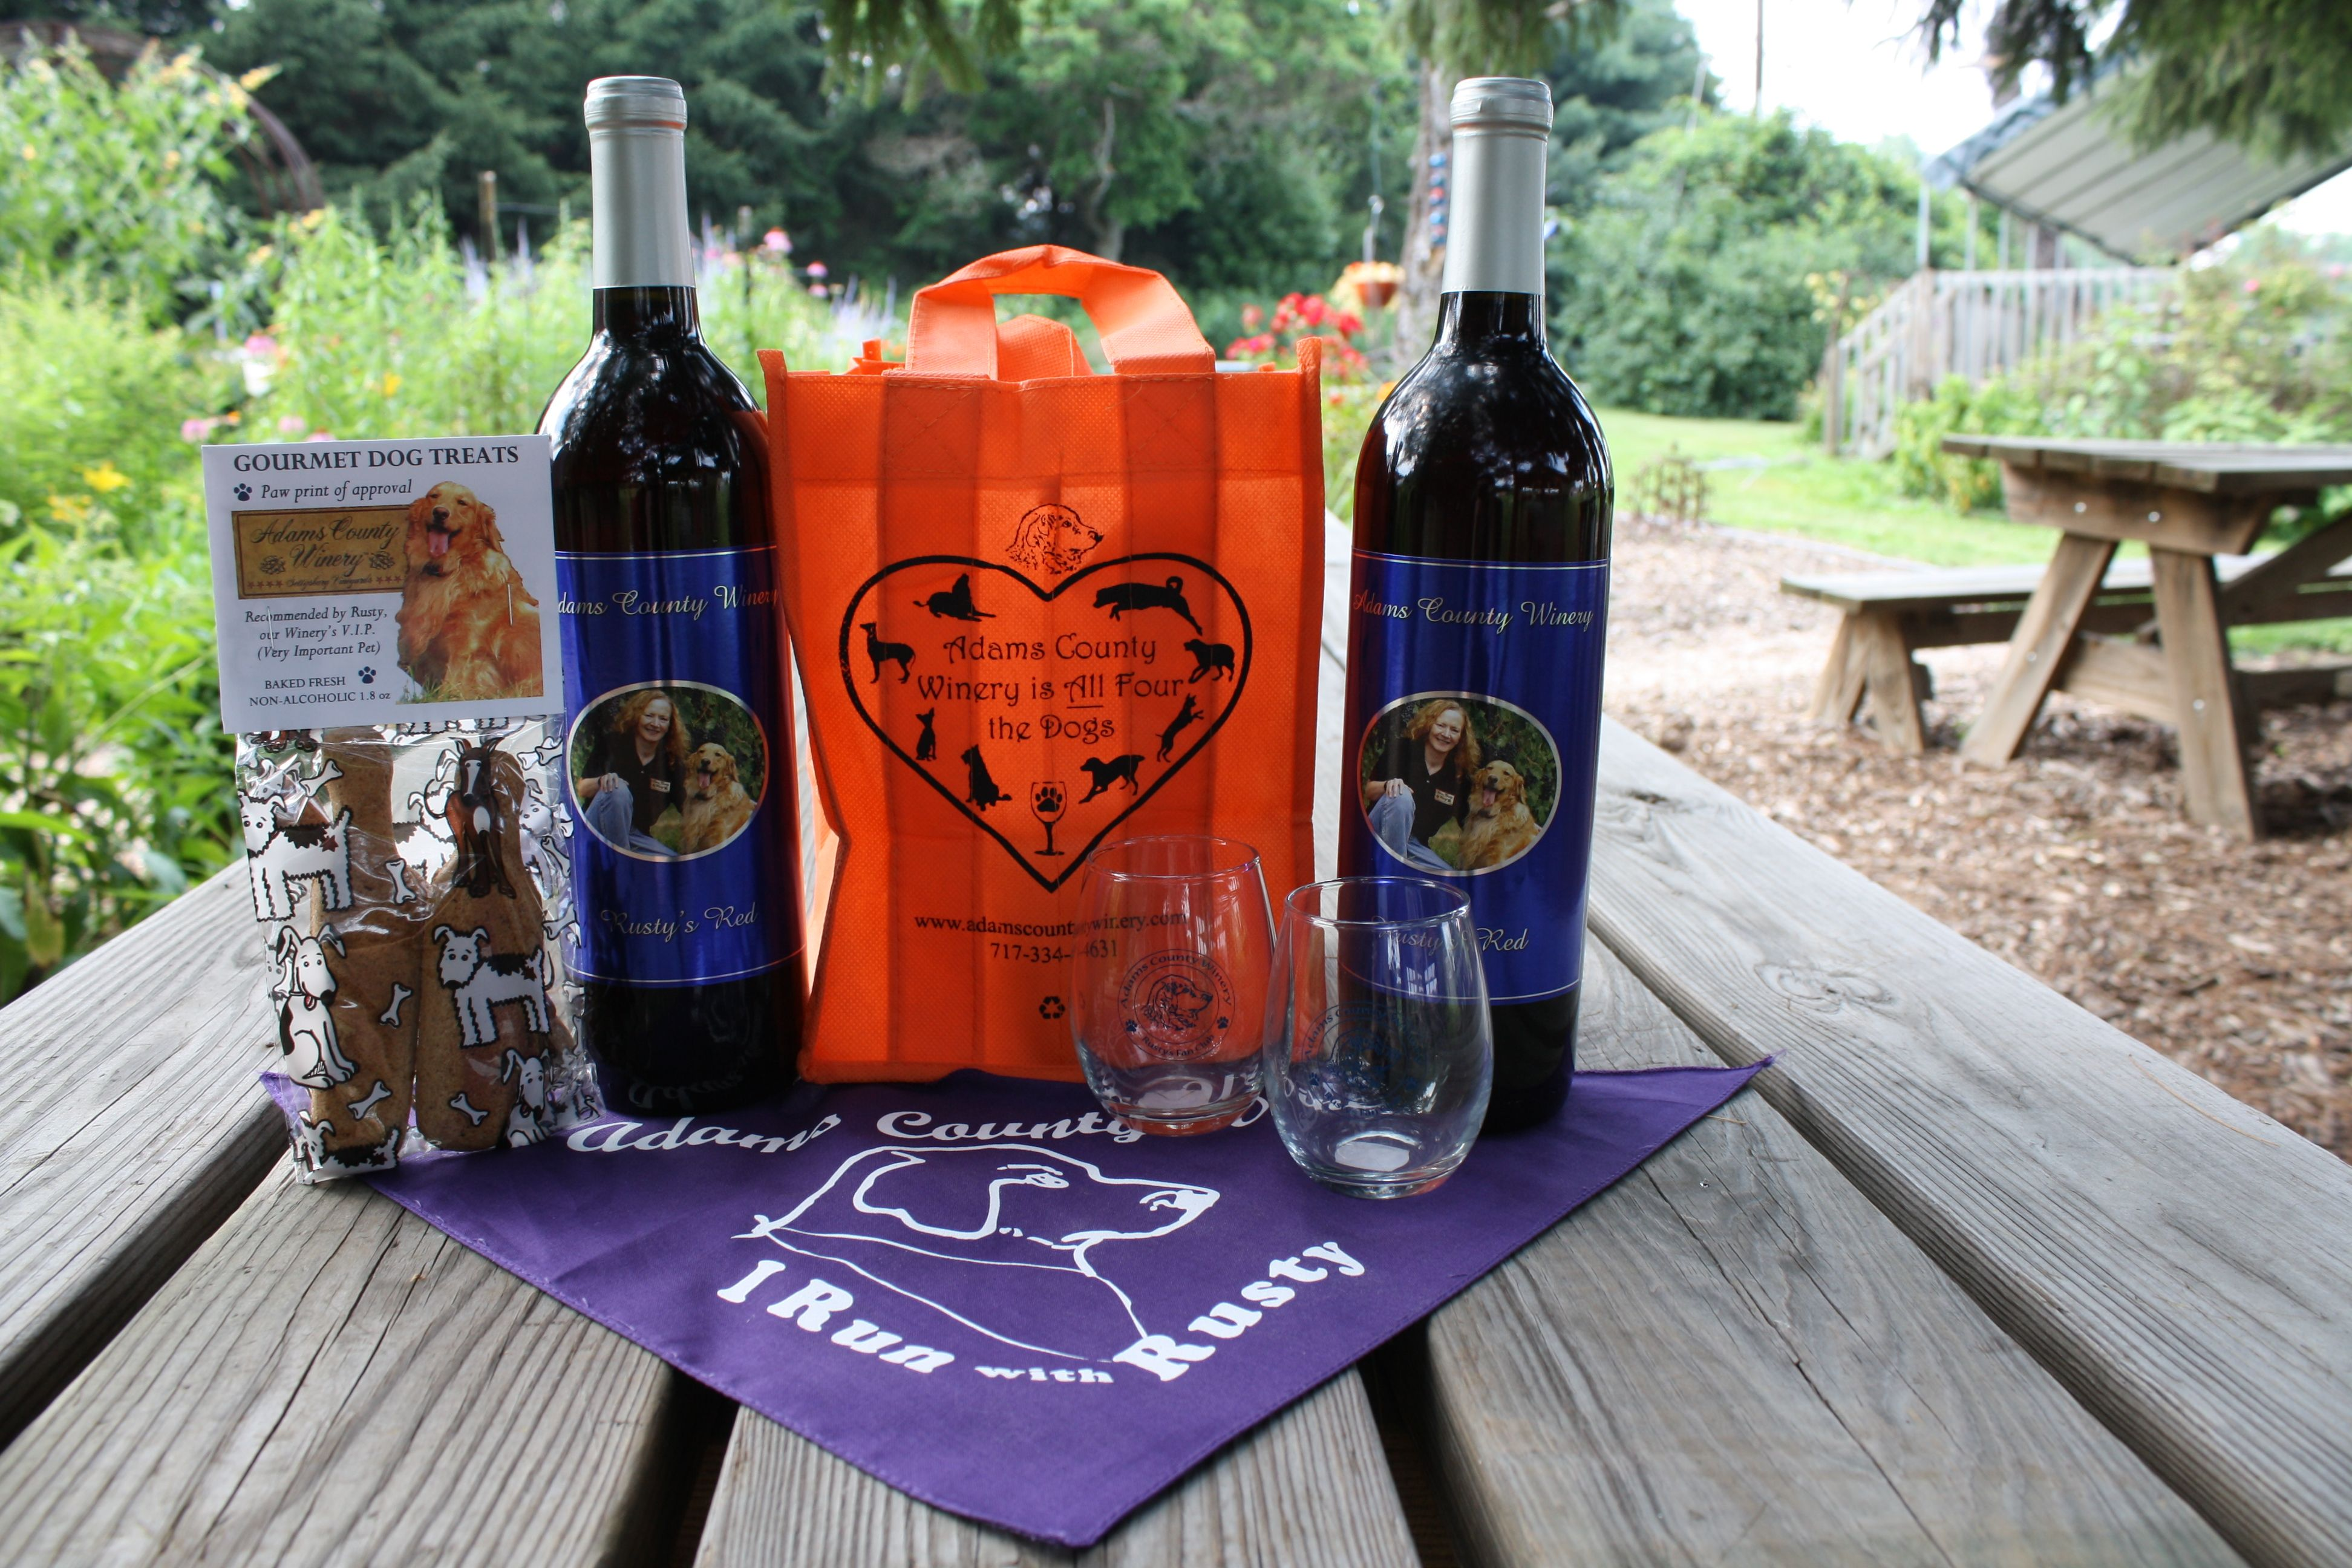 All Things Rusty Rusty S Red Wine Rusty S Dog Treats The All Fours 4 Bottle Tote And The Rusty Bandana Dog Treats Tasting Room Gourmet Dog Treats